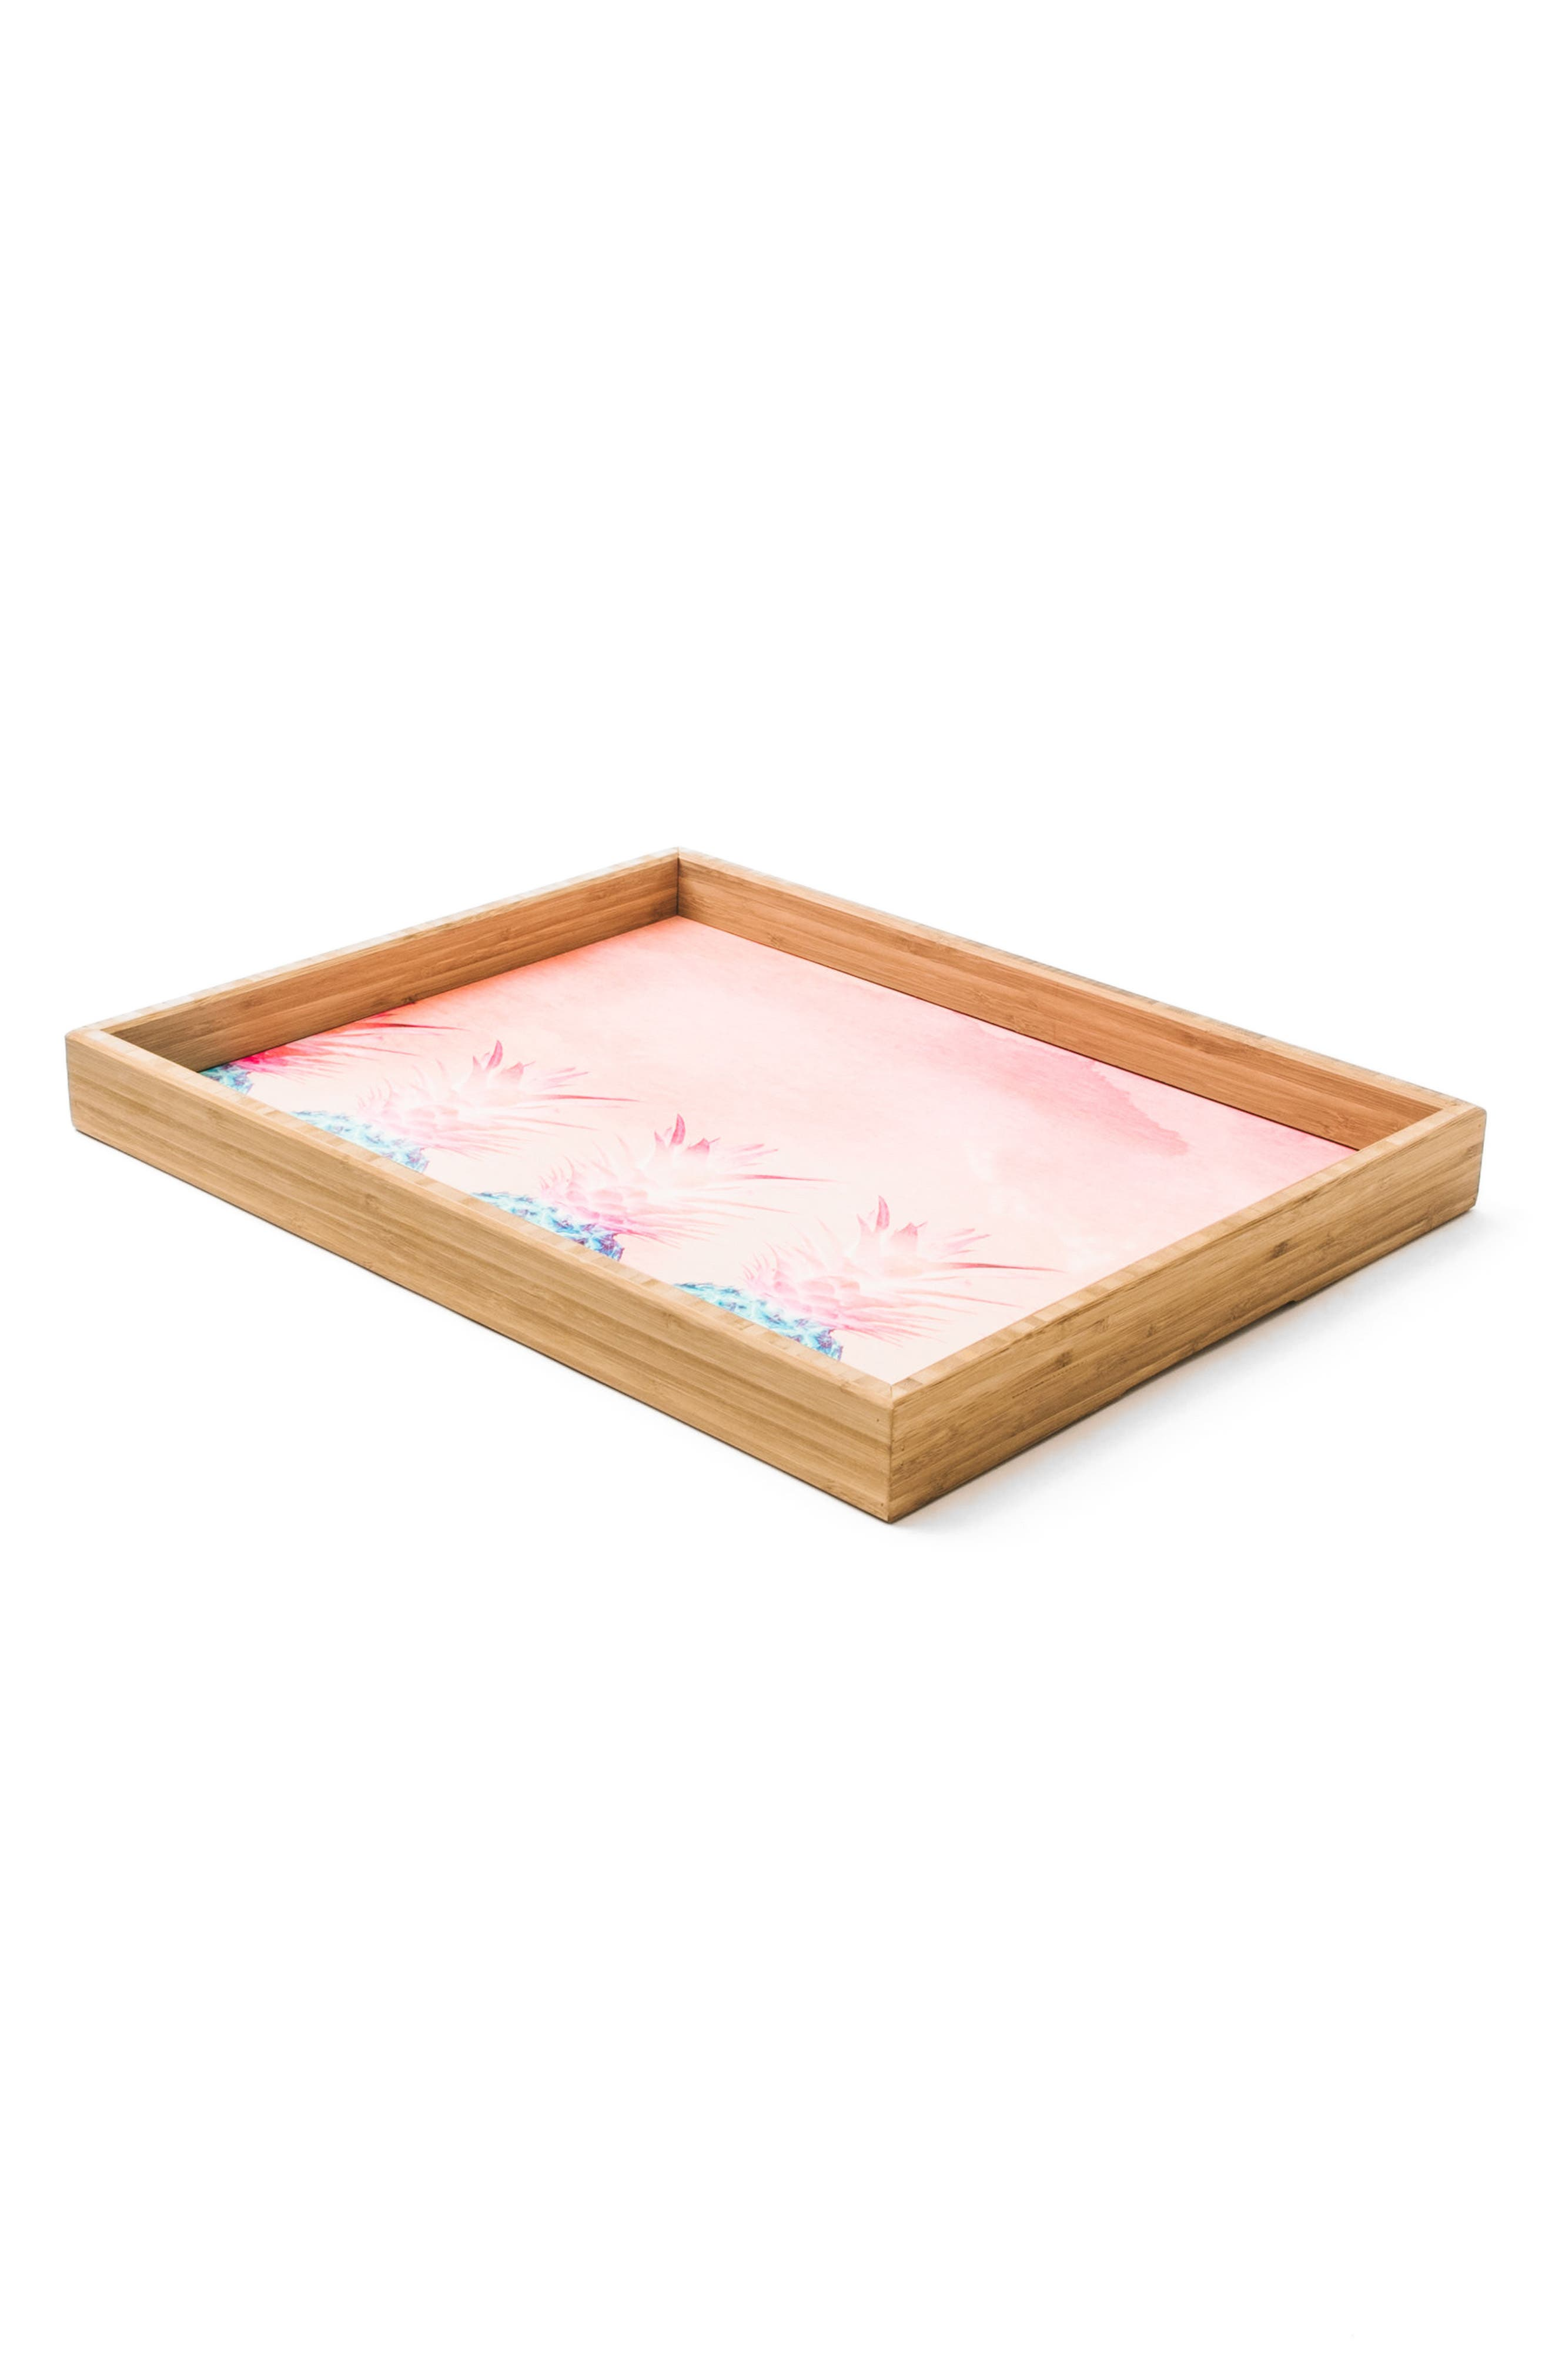 Pineapple Farm Serving Tray,                             Alternate thumbnail 5, color,